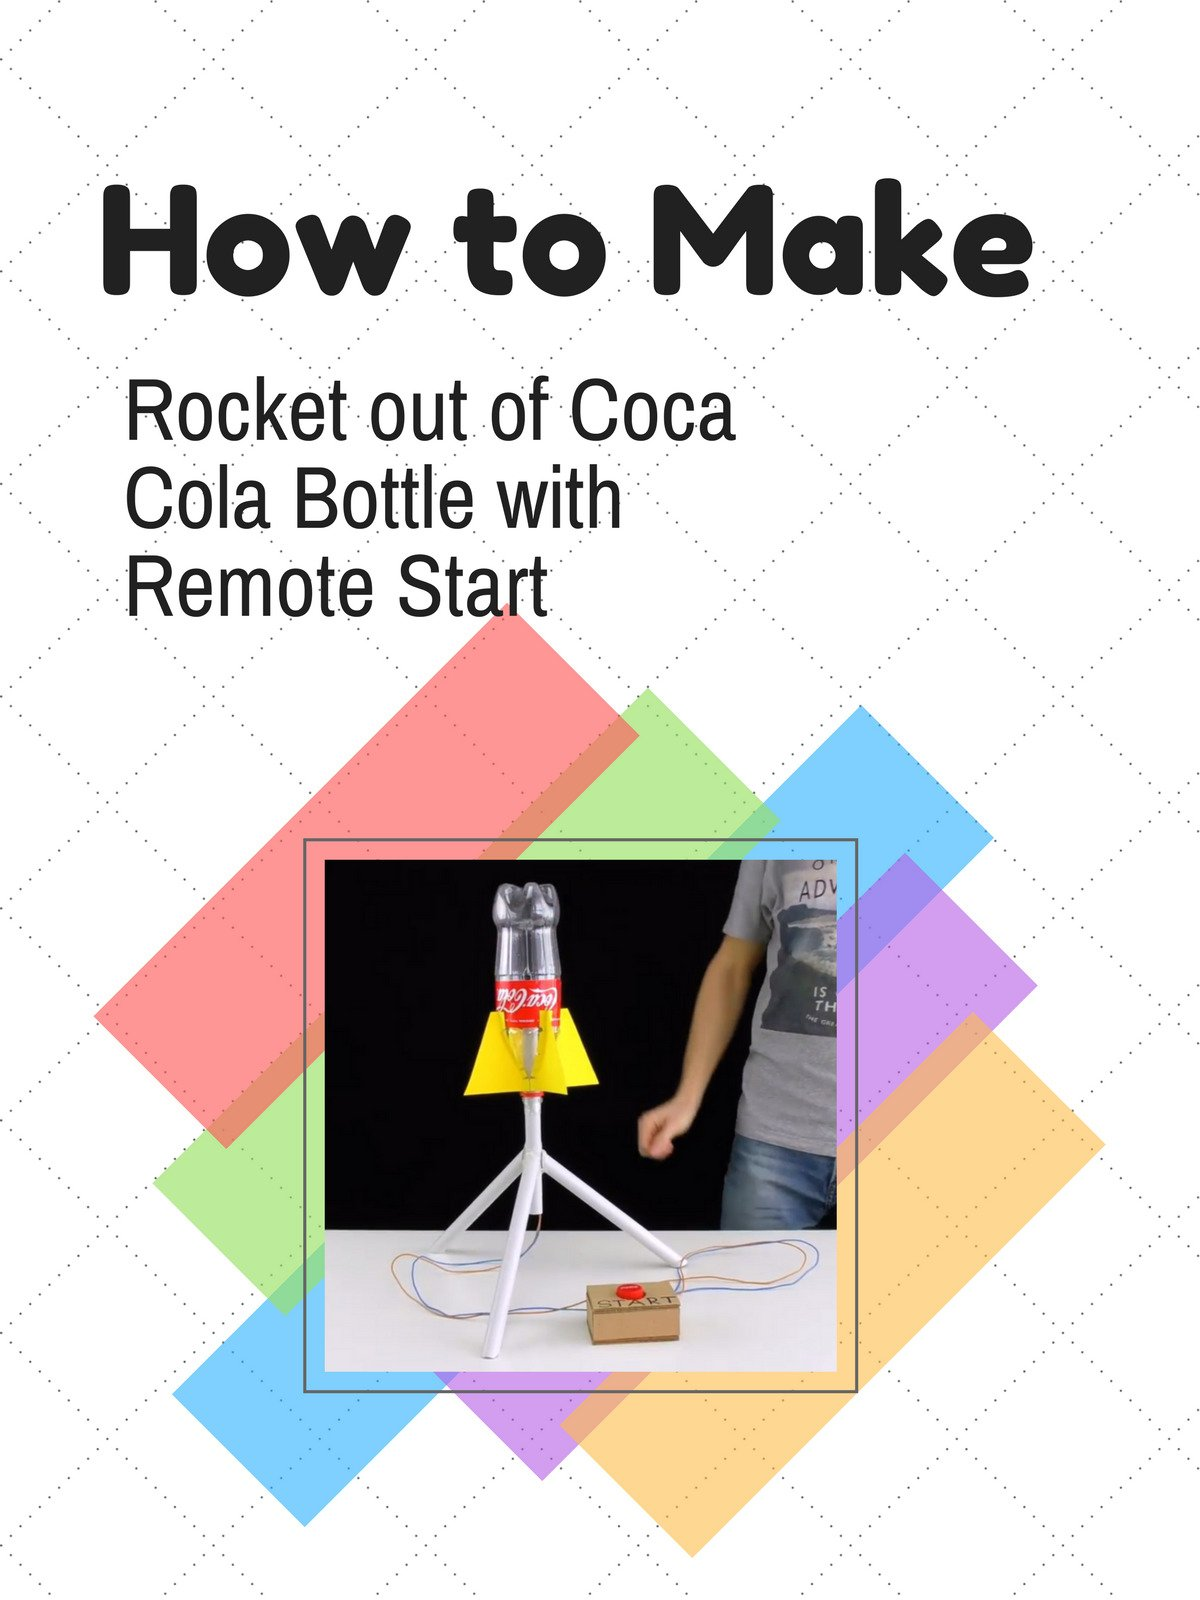 How to Make Rocket out of Coca Cola Bottle with Remote Start